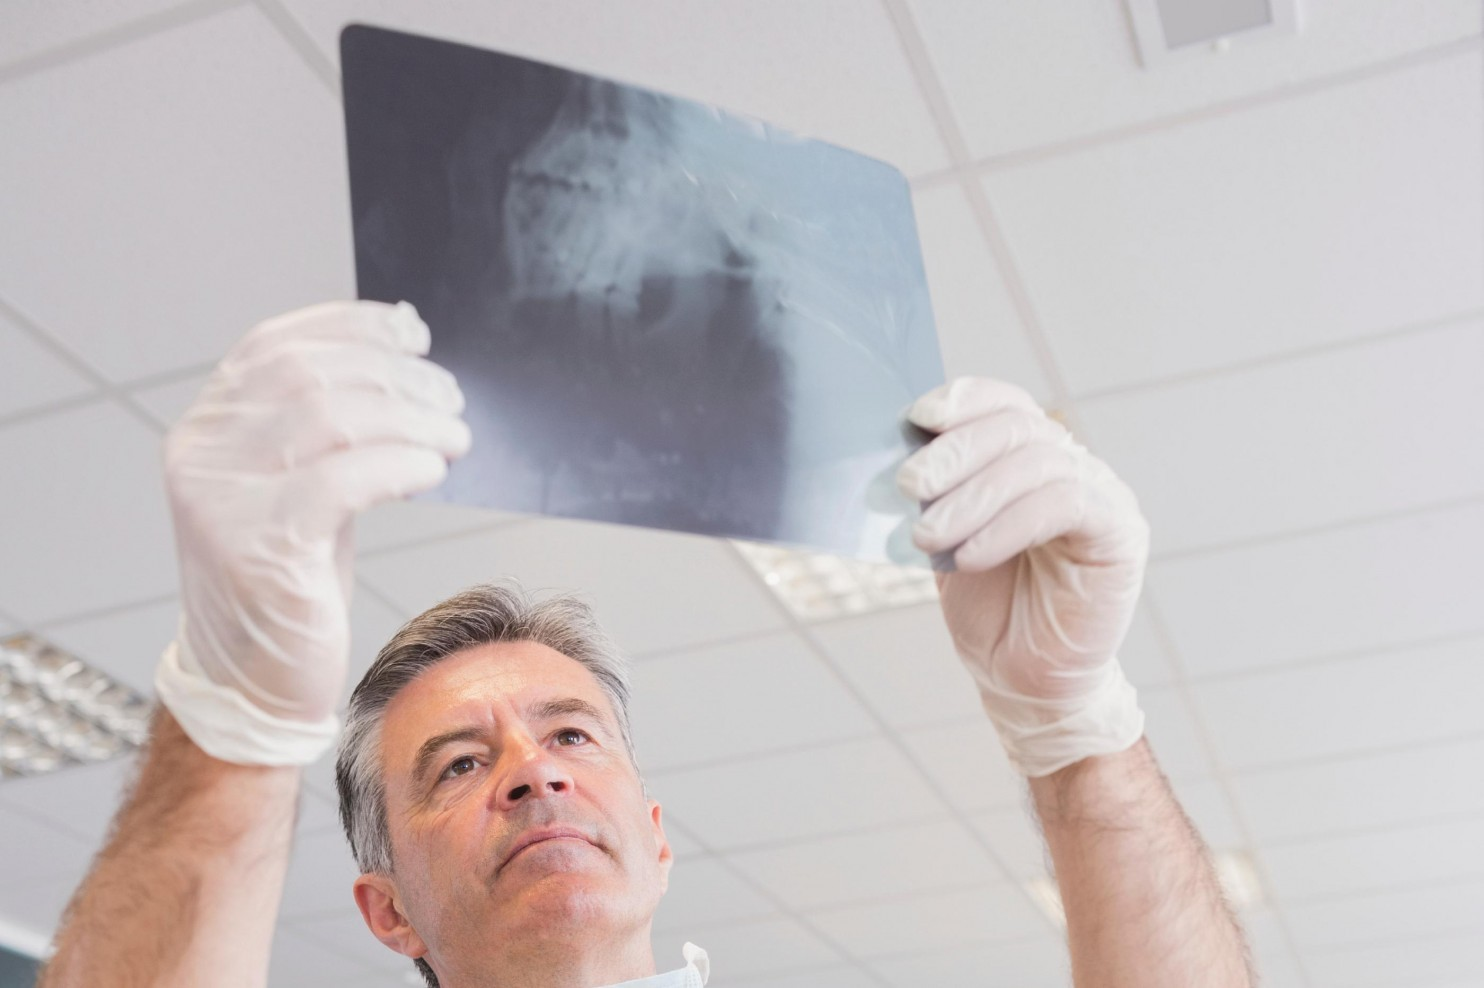 Does Gum Disease Have a Link to Cancer?